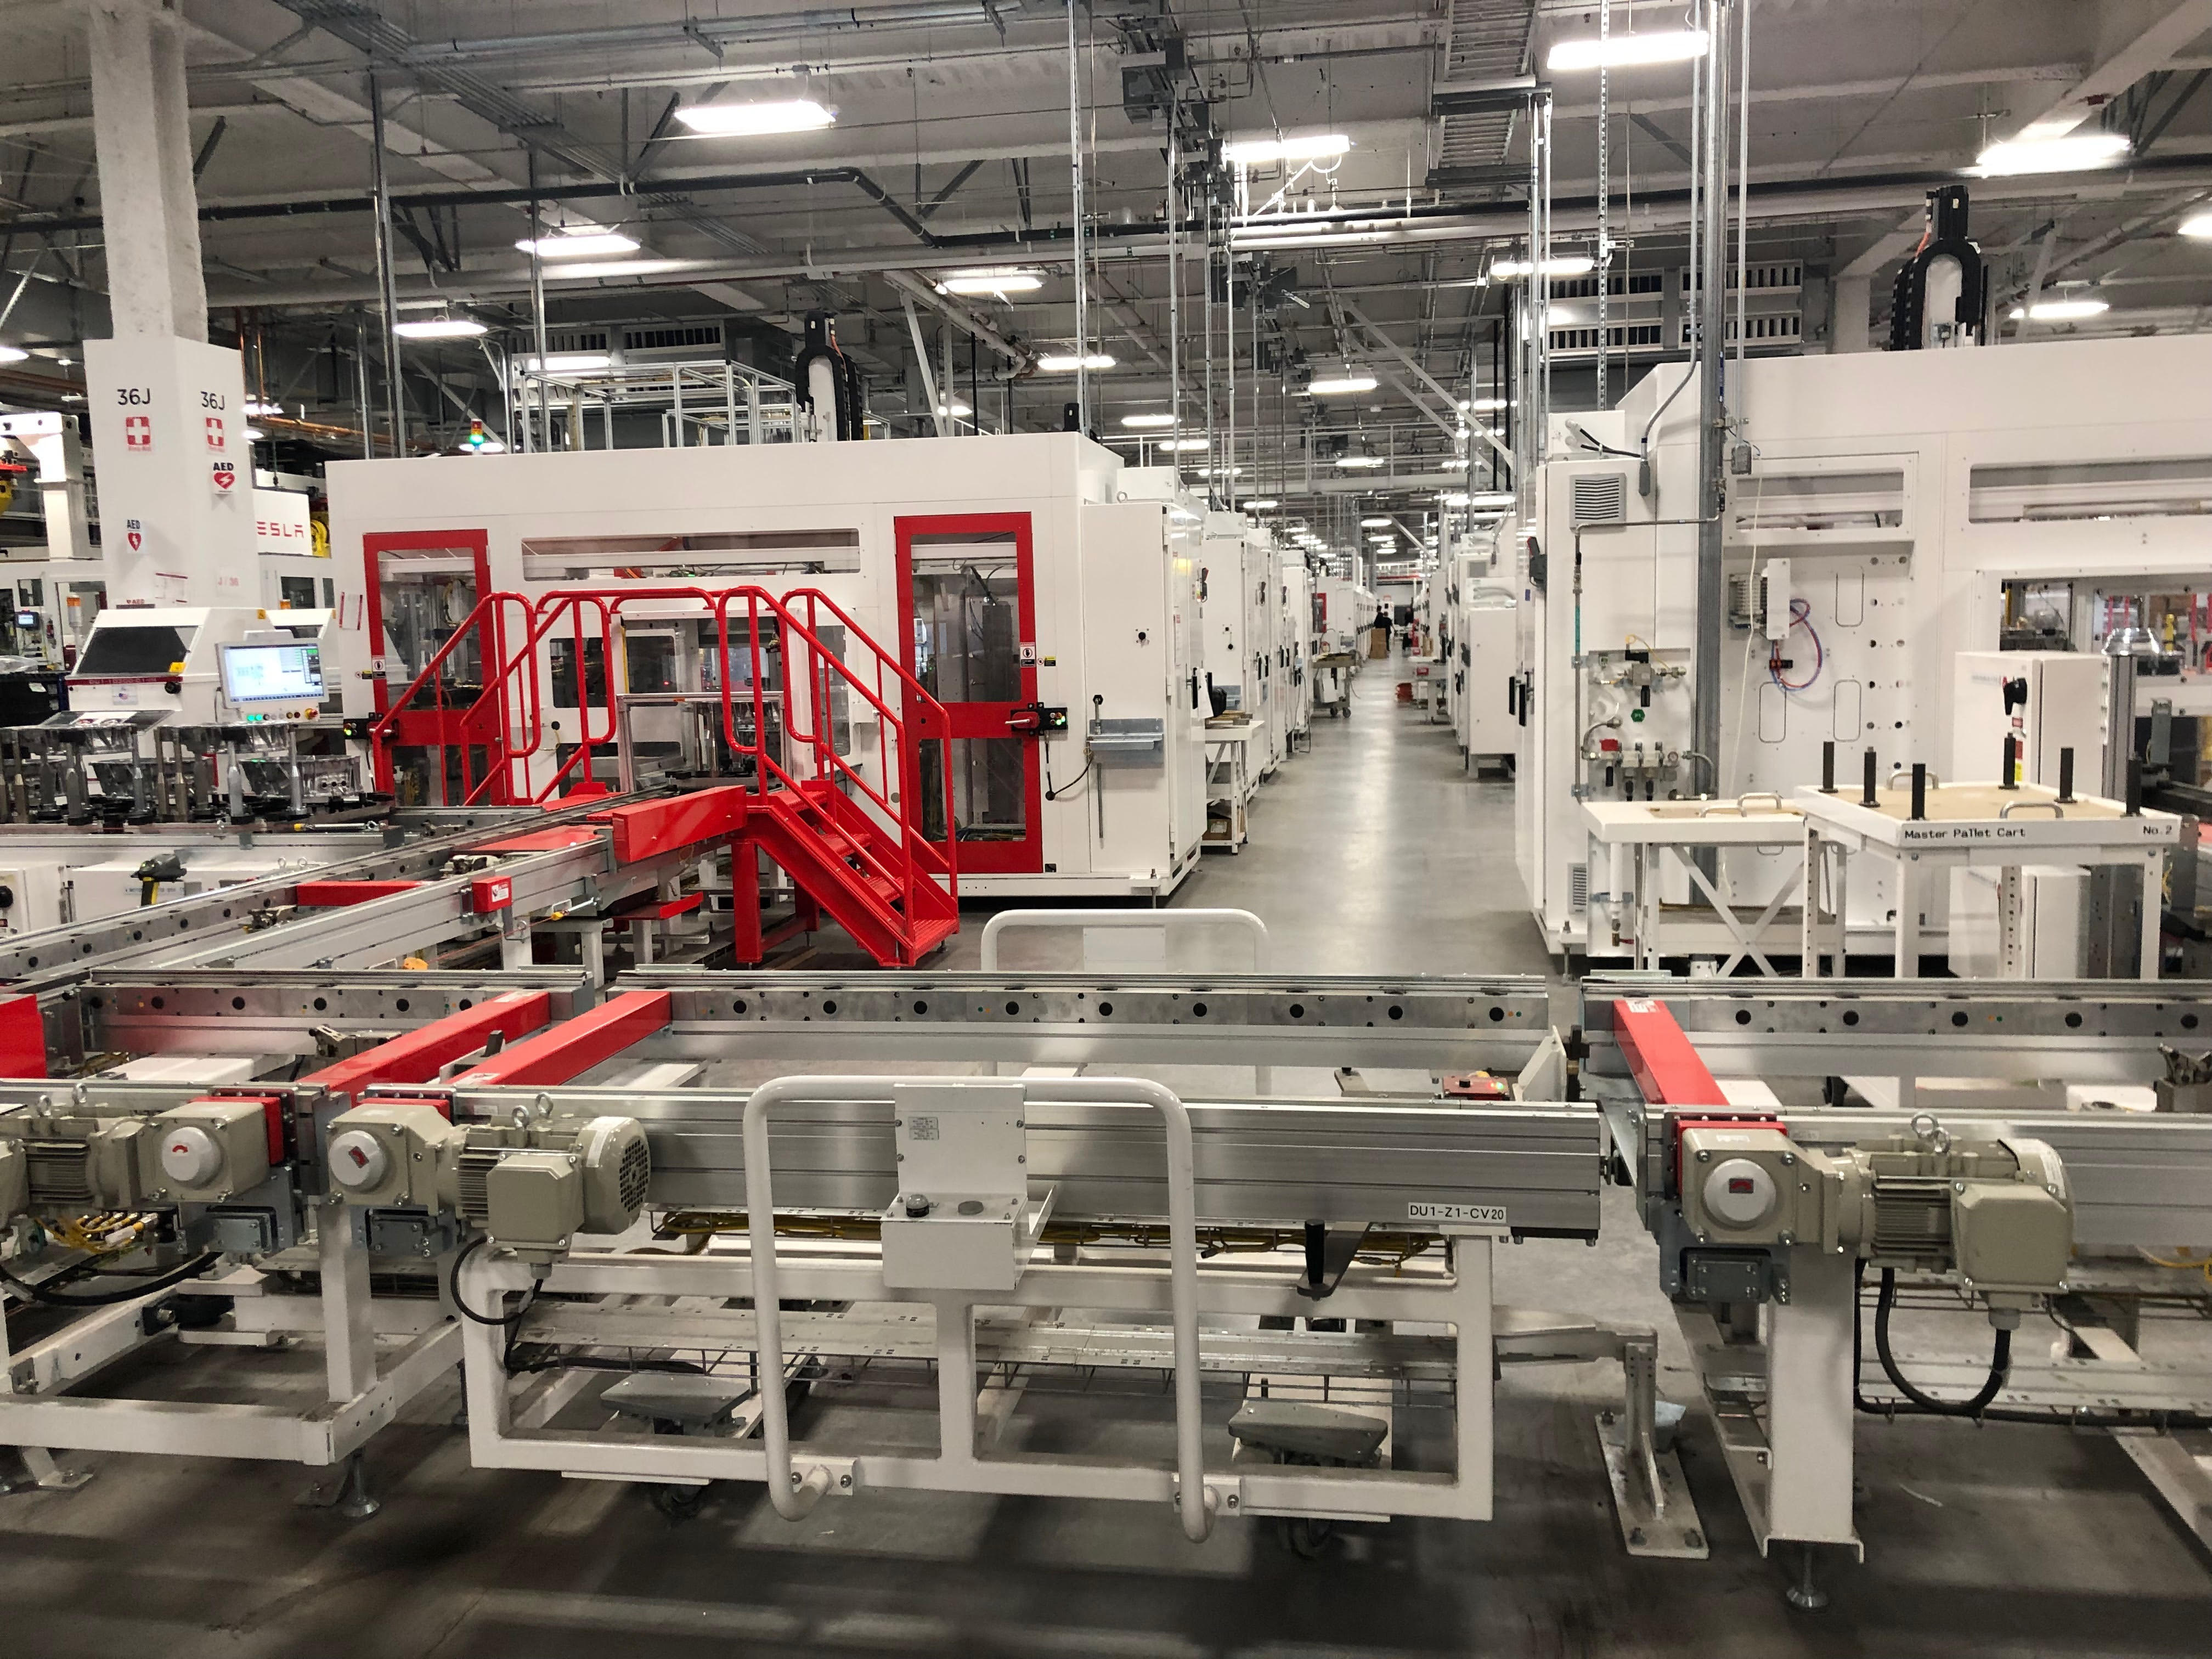 Tesla has a secret lab trying to build its own battery cells to reduce dependence on Panasonic